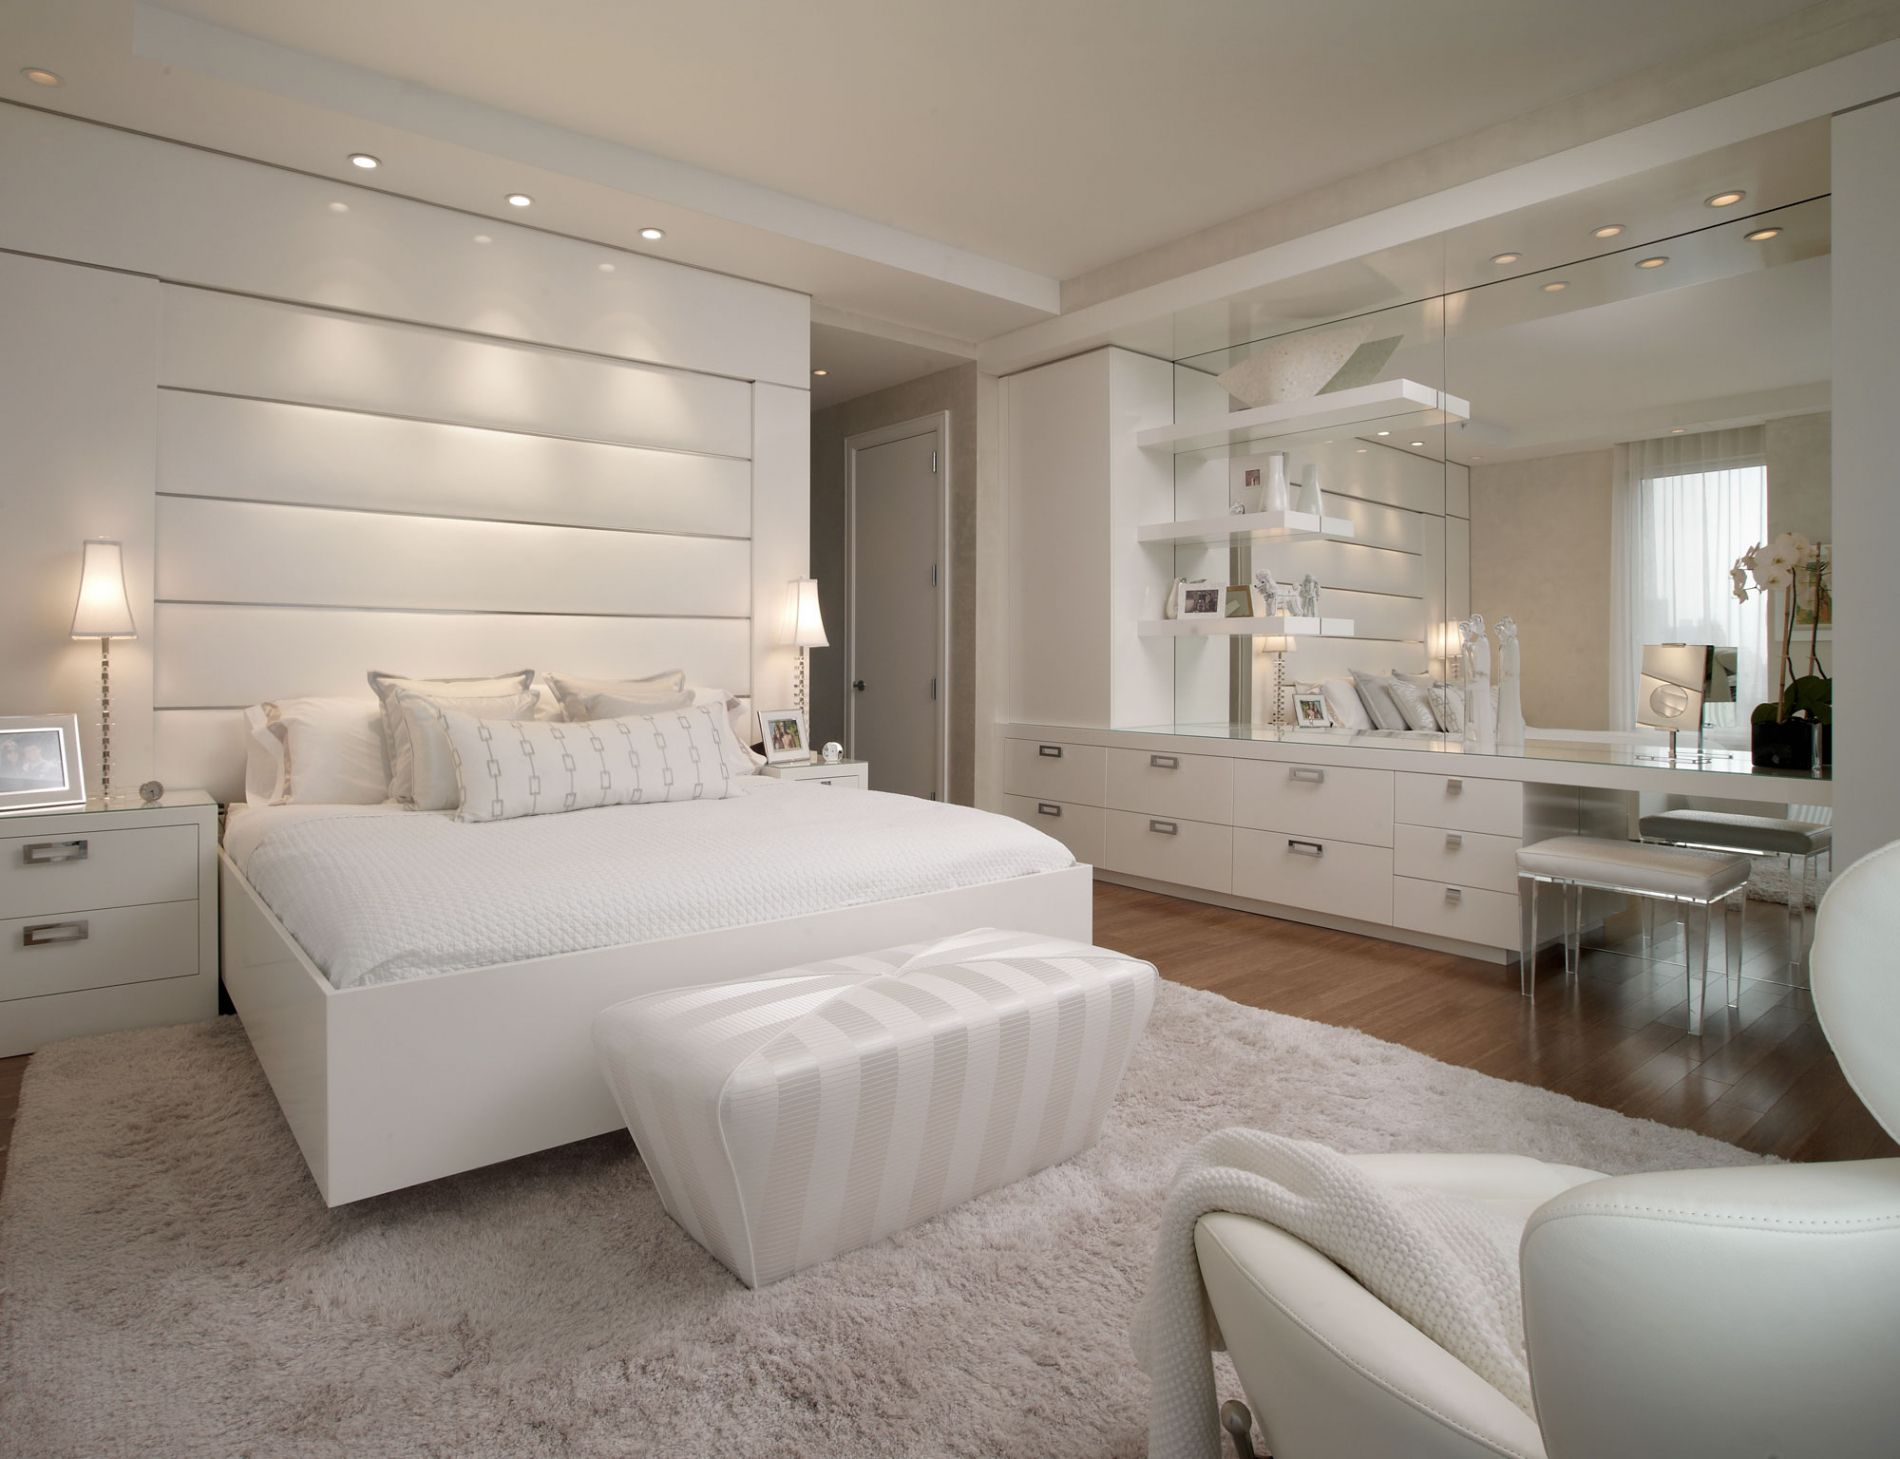 Best 32 Best And Stunning Modern Glamour Bedroom Design Ideas Freshouz Com Luxurious Bedrooms 400 x 300